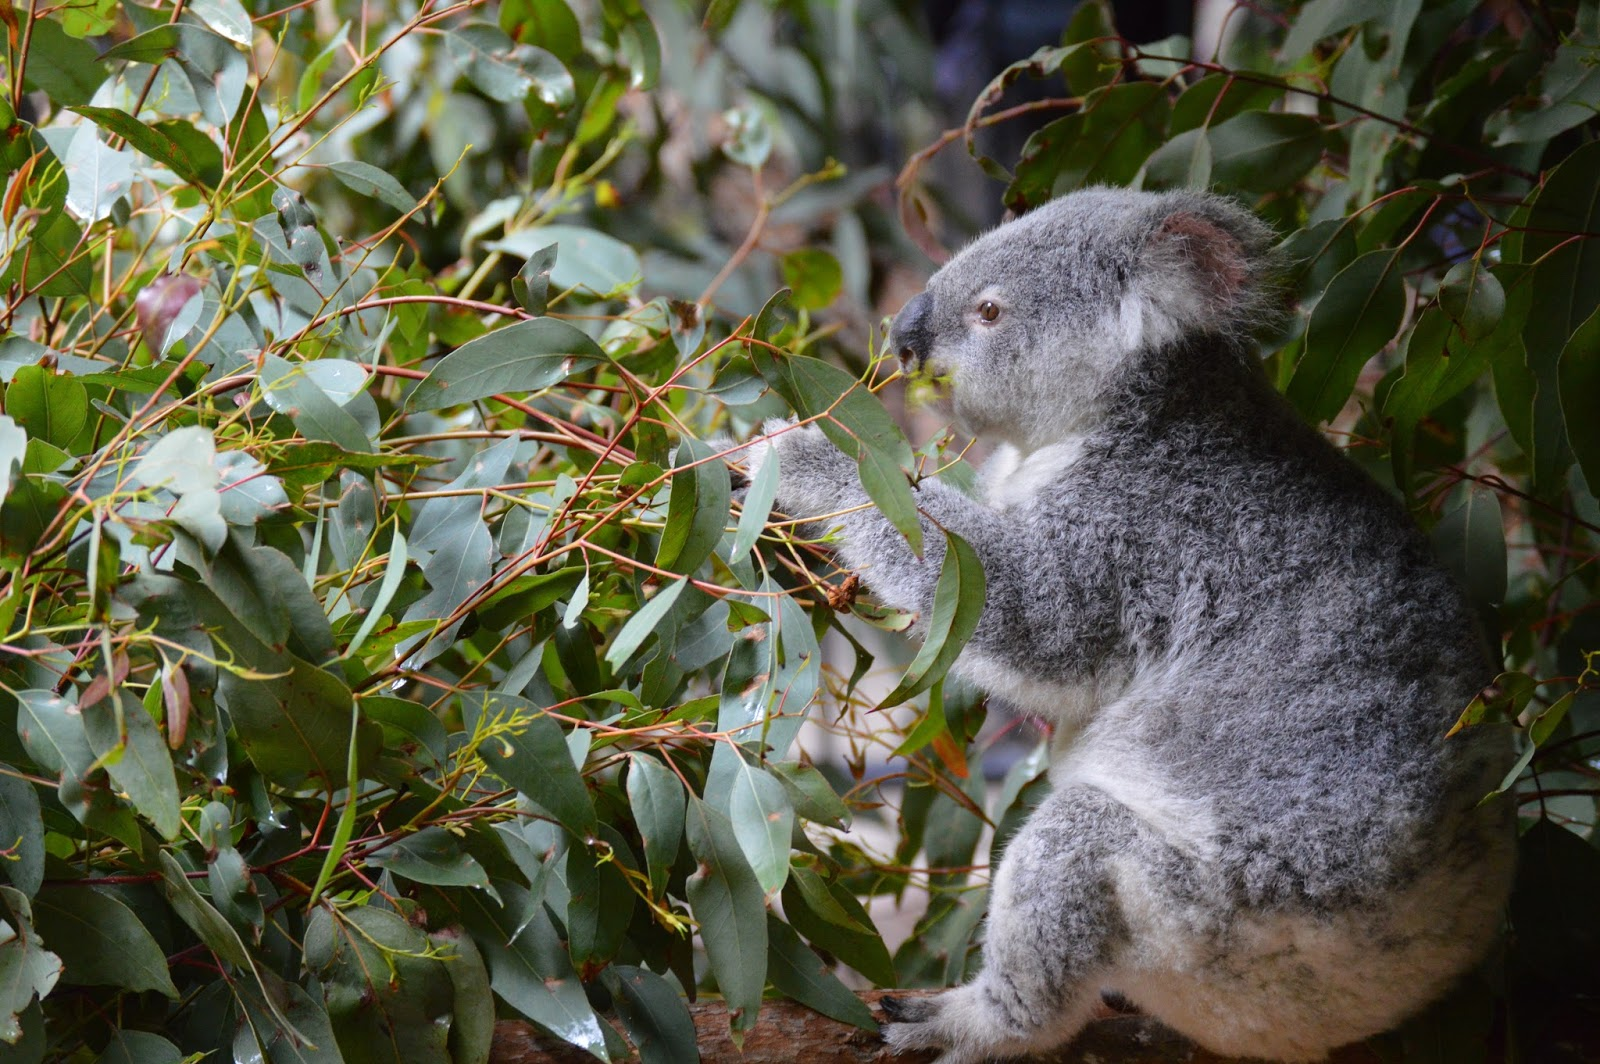 Koala eating eucalyptus.